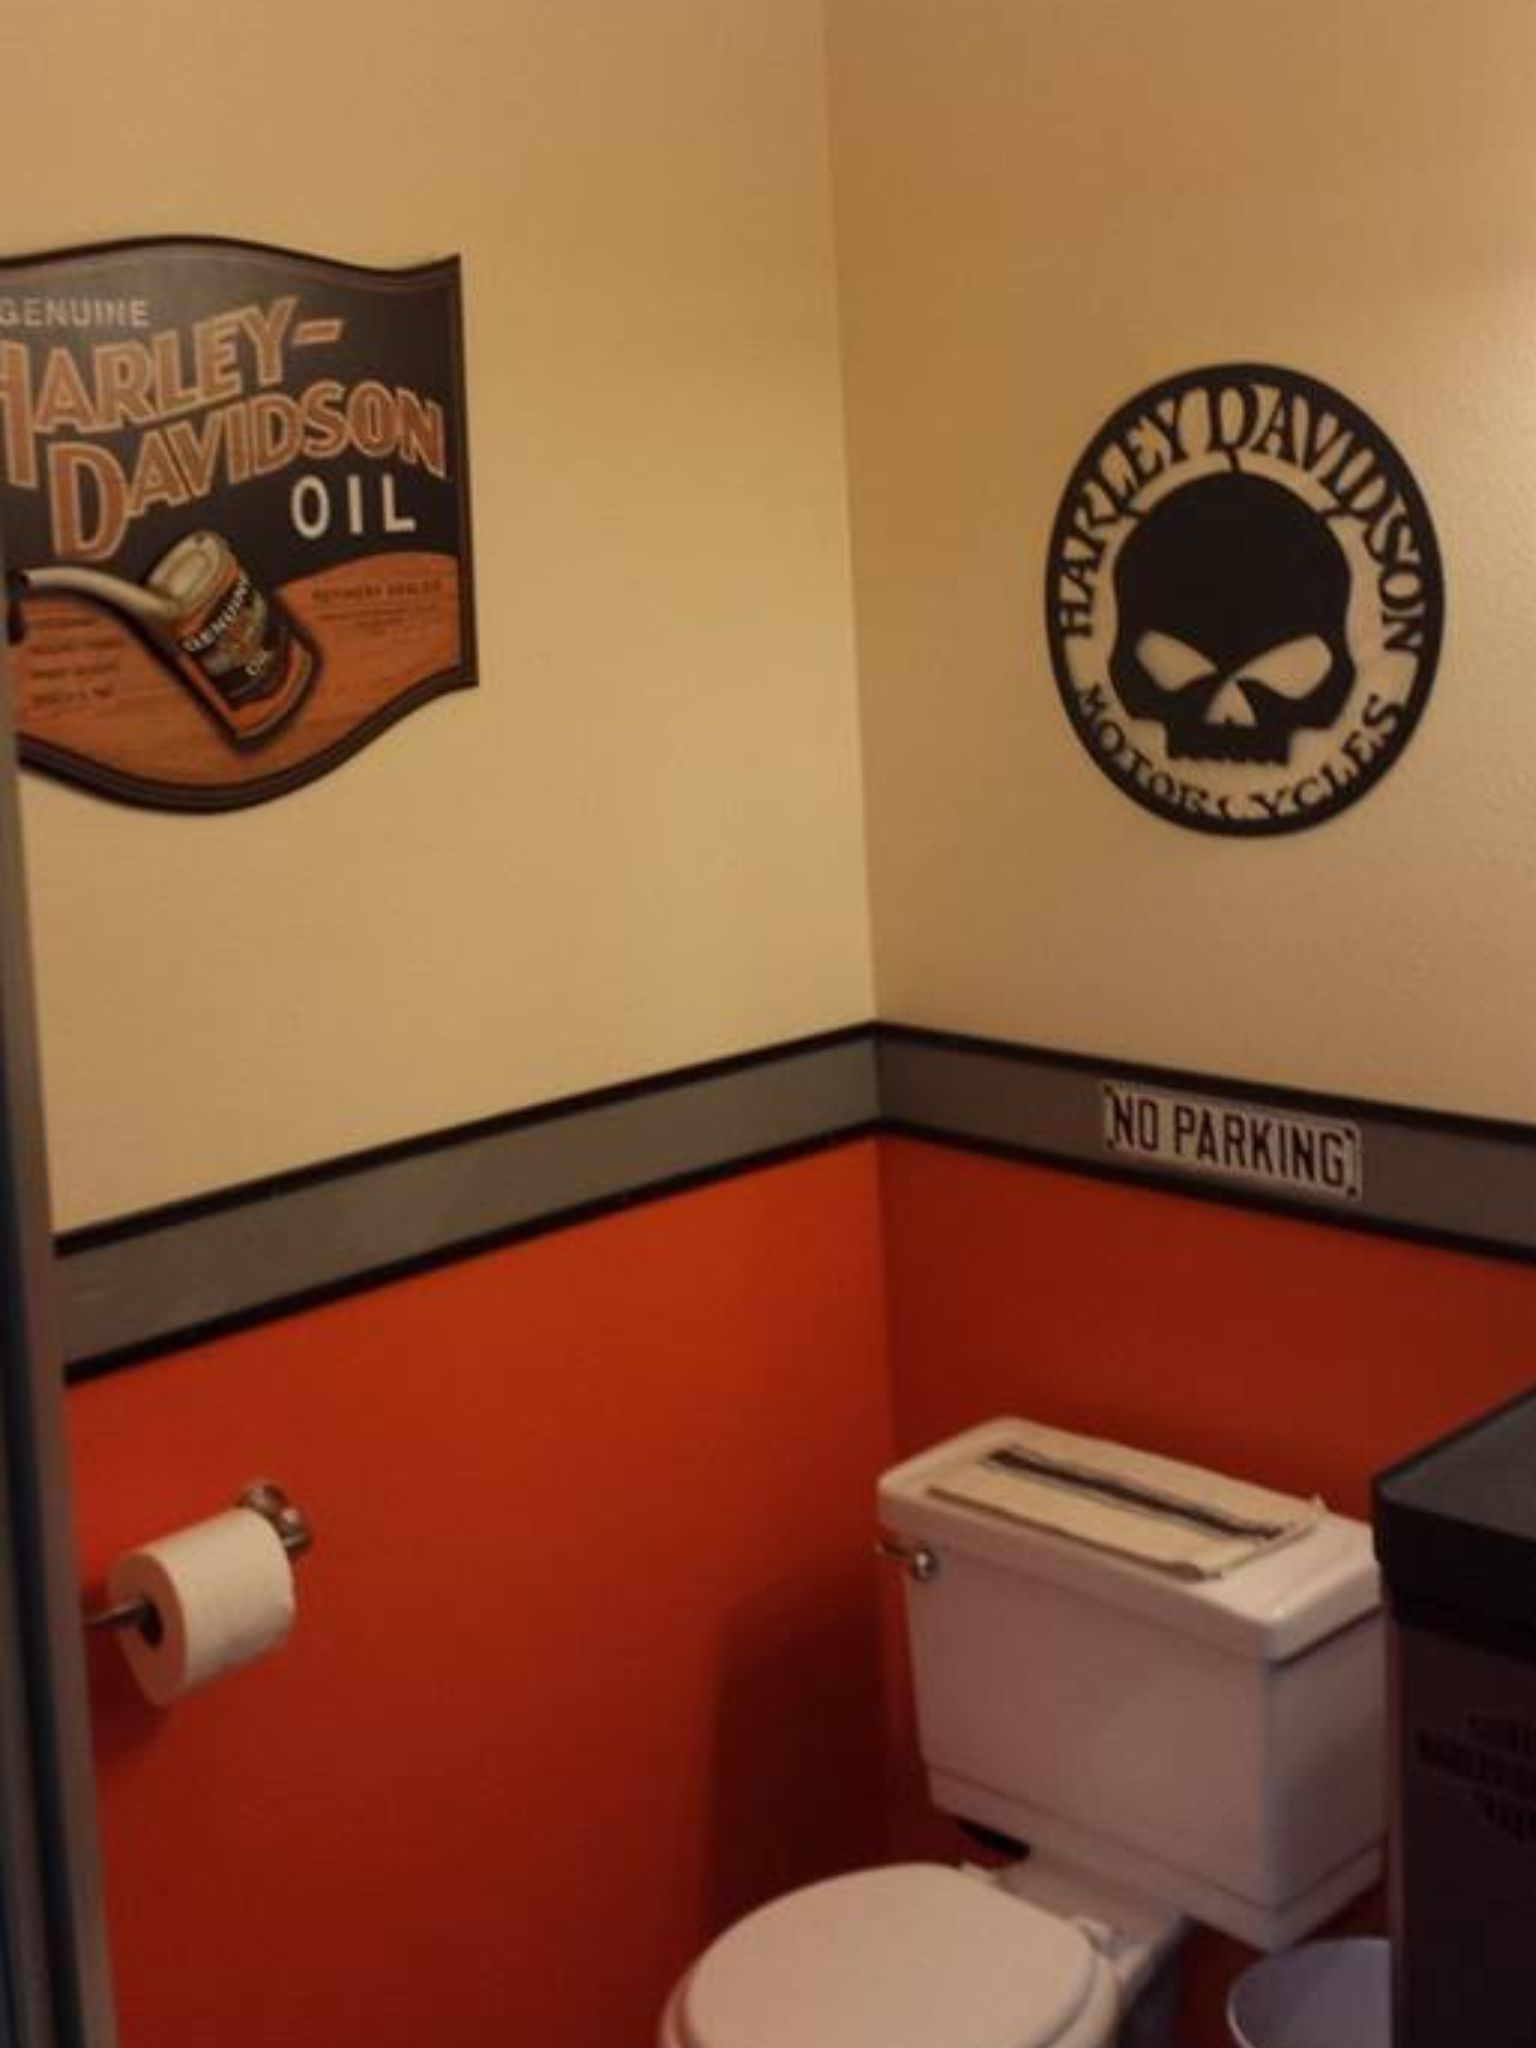 Harley Davidson bathroom h & d stuff Pinterest